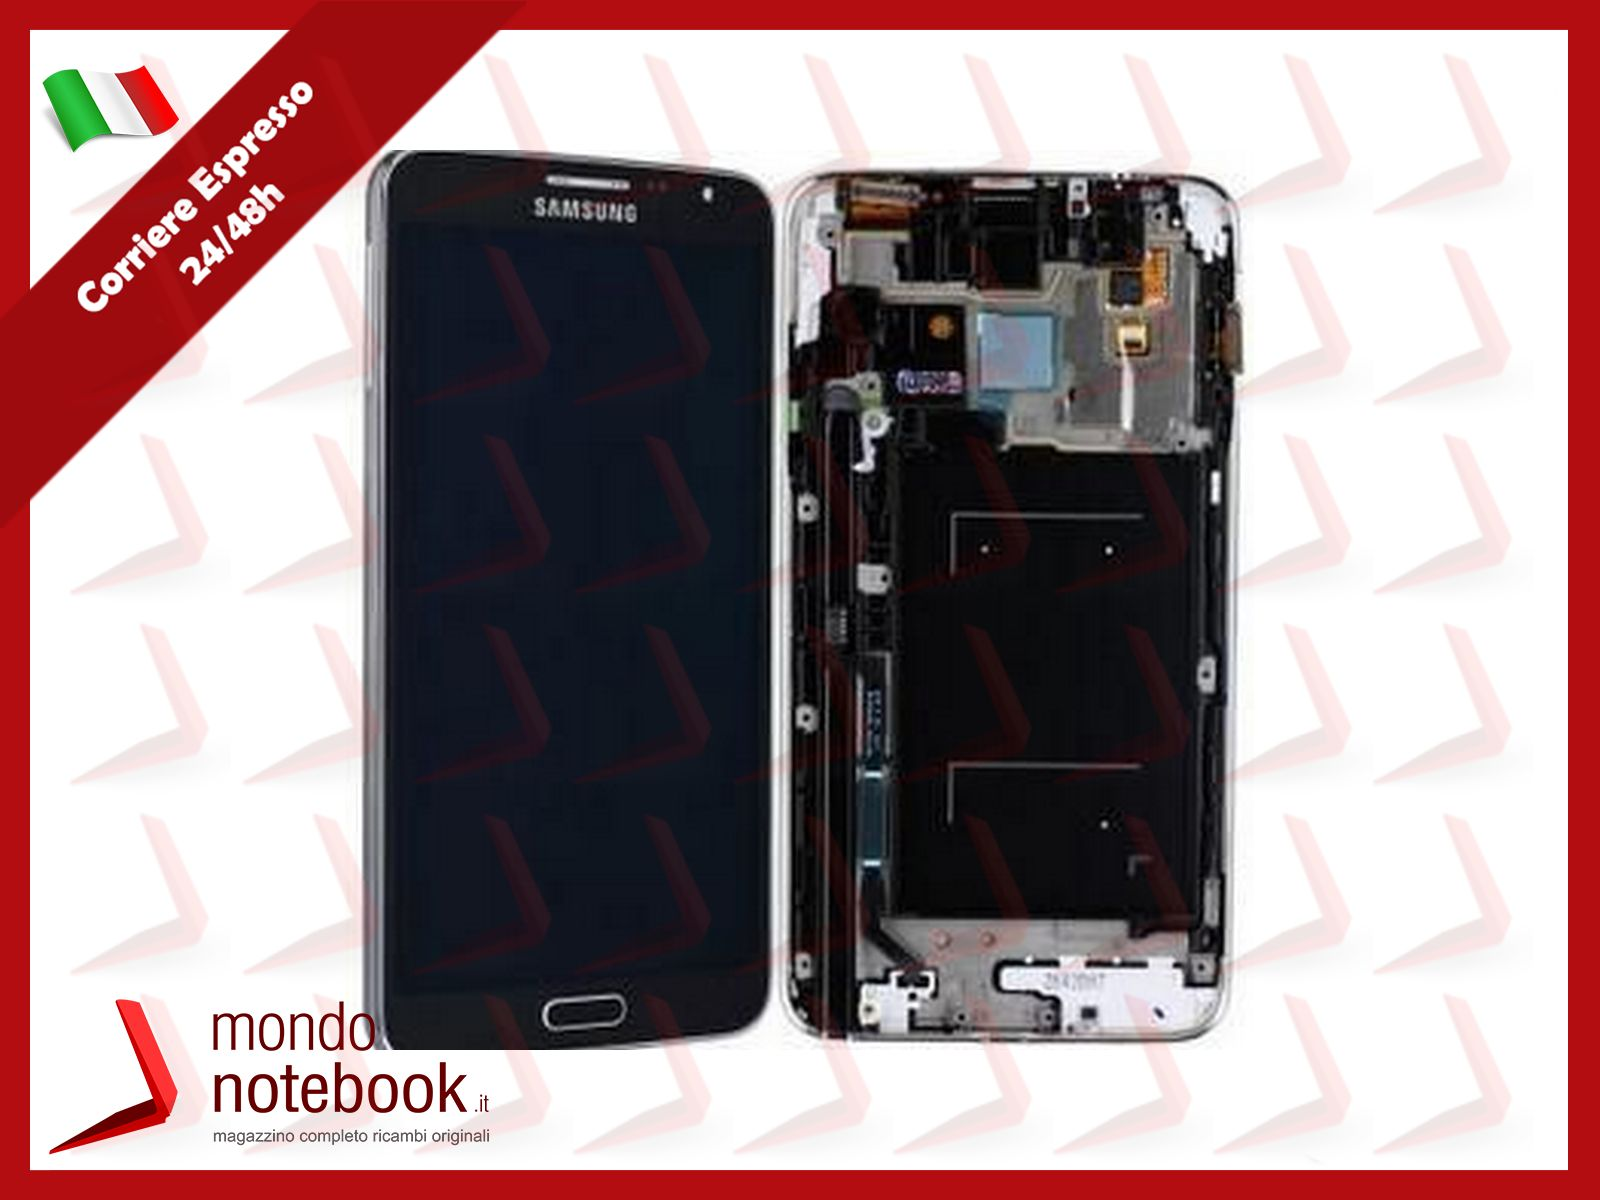 https://www.mondonotebook.it/11072/bottom-case-scocca-cover-inferiore-toshiba-satellite-c650-c655-c655d.jpg